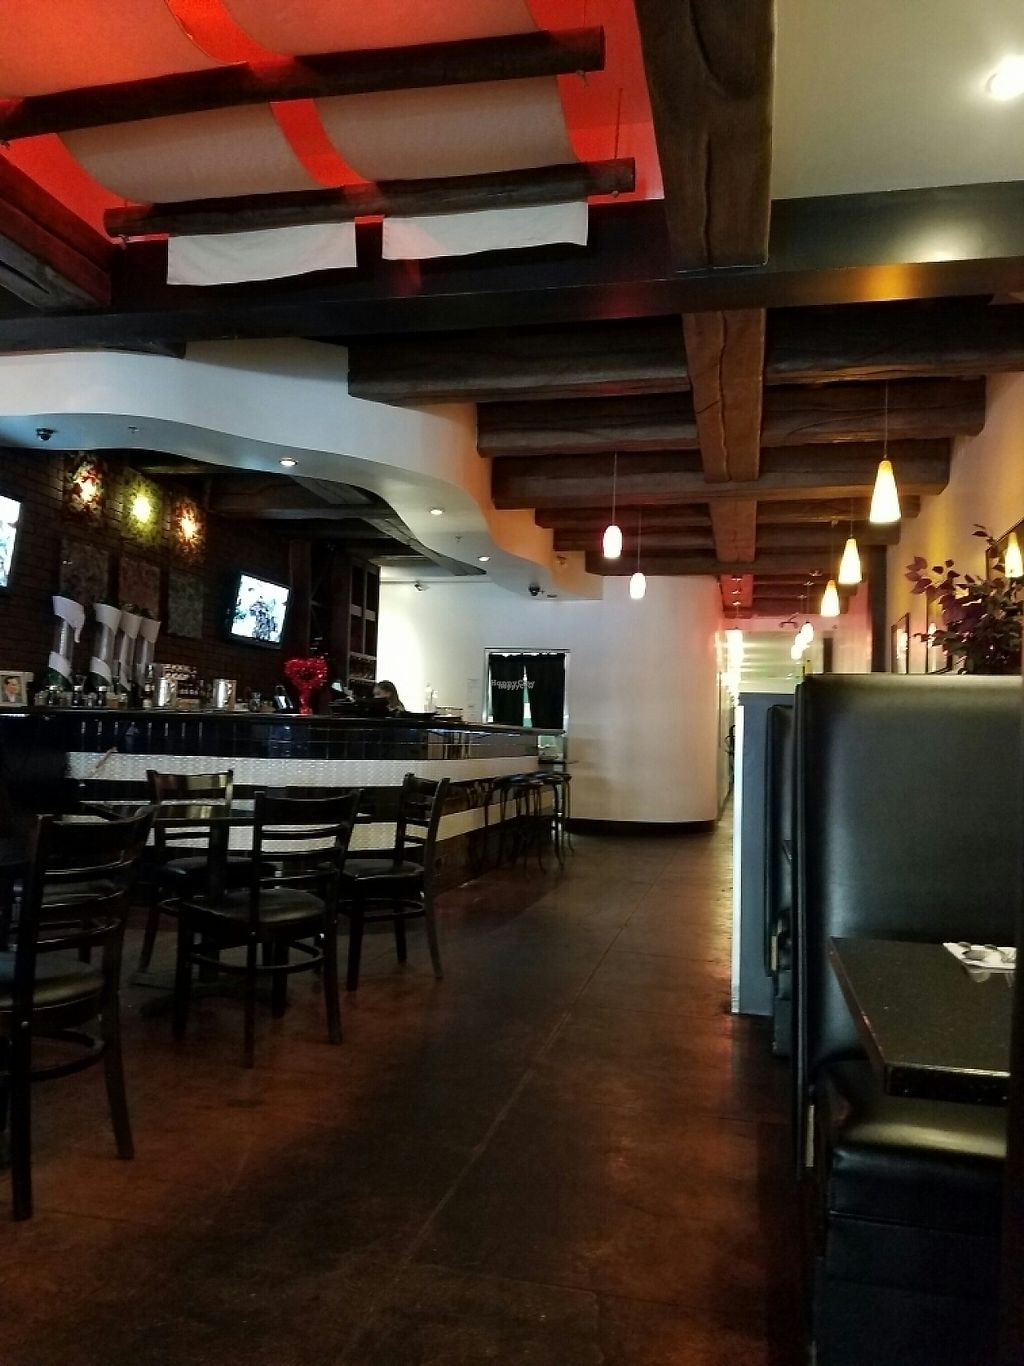 """Photo of Mint Downtown Thai  by <a href=""""/members/profile/JasmineLove"""">JasmineLove</a> <br/>really pretty inside <br/> February 1, 2017  - <a href='/contact/abuse/image/25012/220704'>Report</a>"""